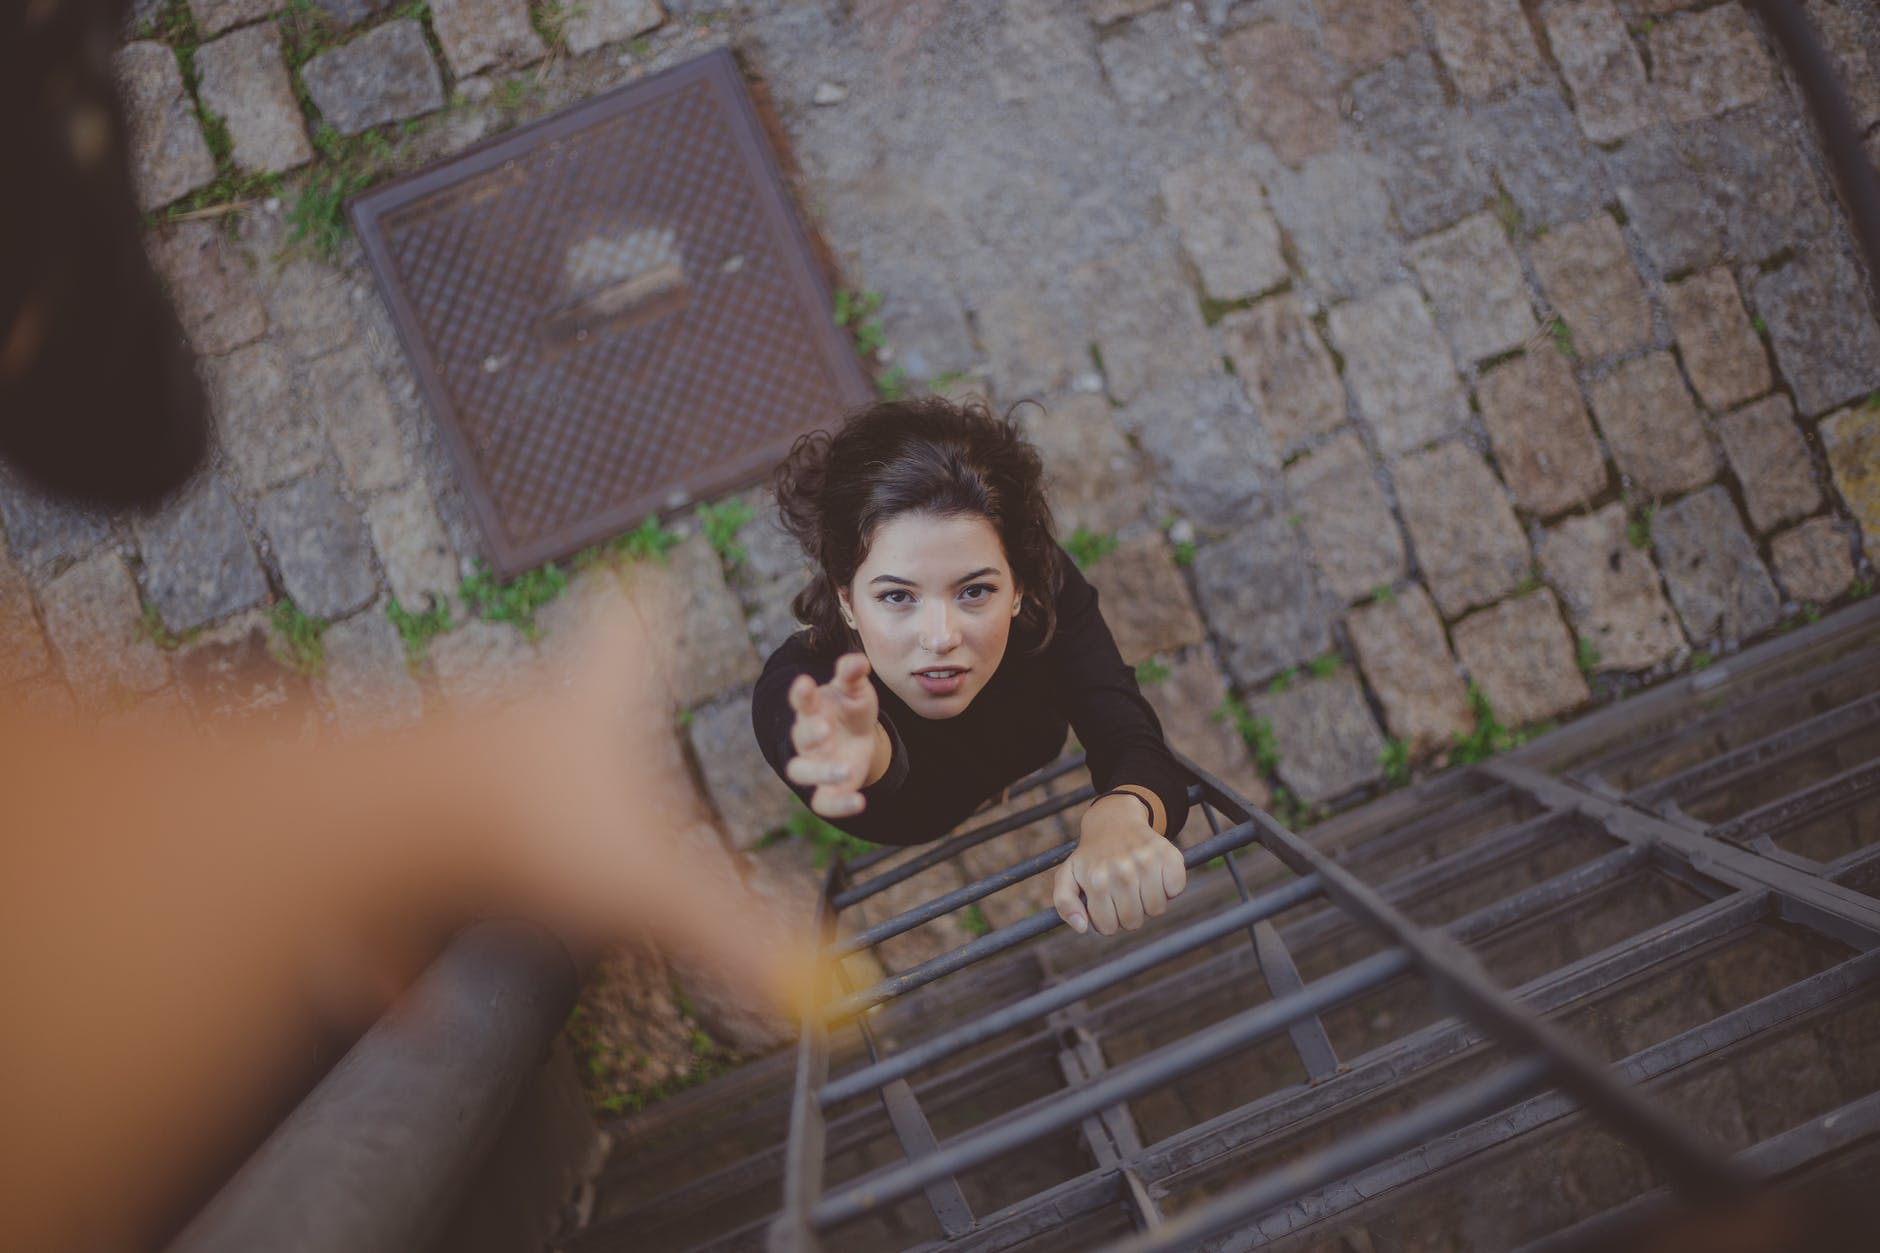 Photo by Samantha Garrote: From the perspective of someone higher up a ladder, extending their hand down to a woman further below, holding her hand up.